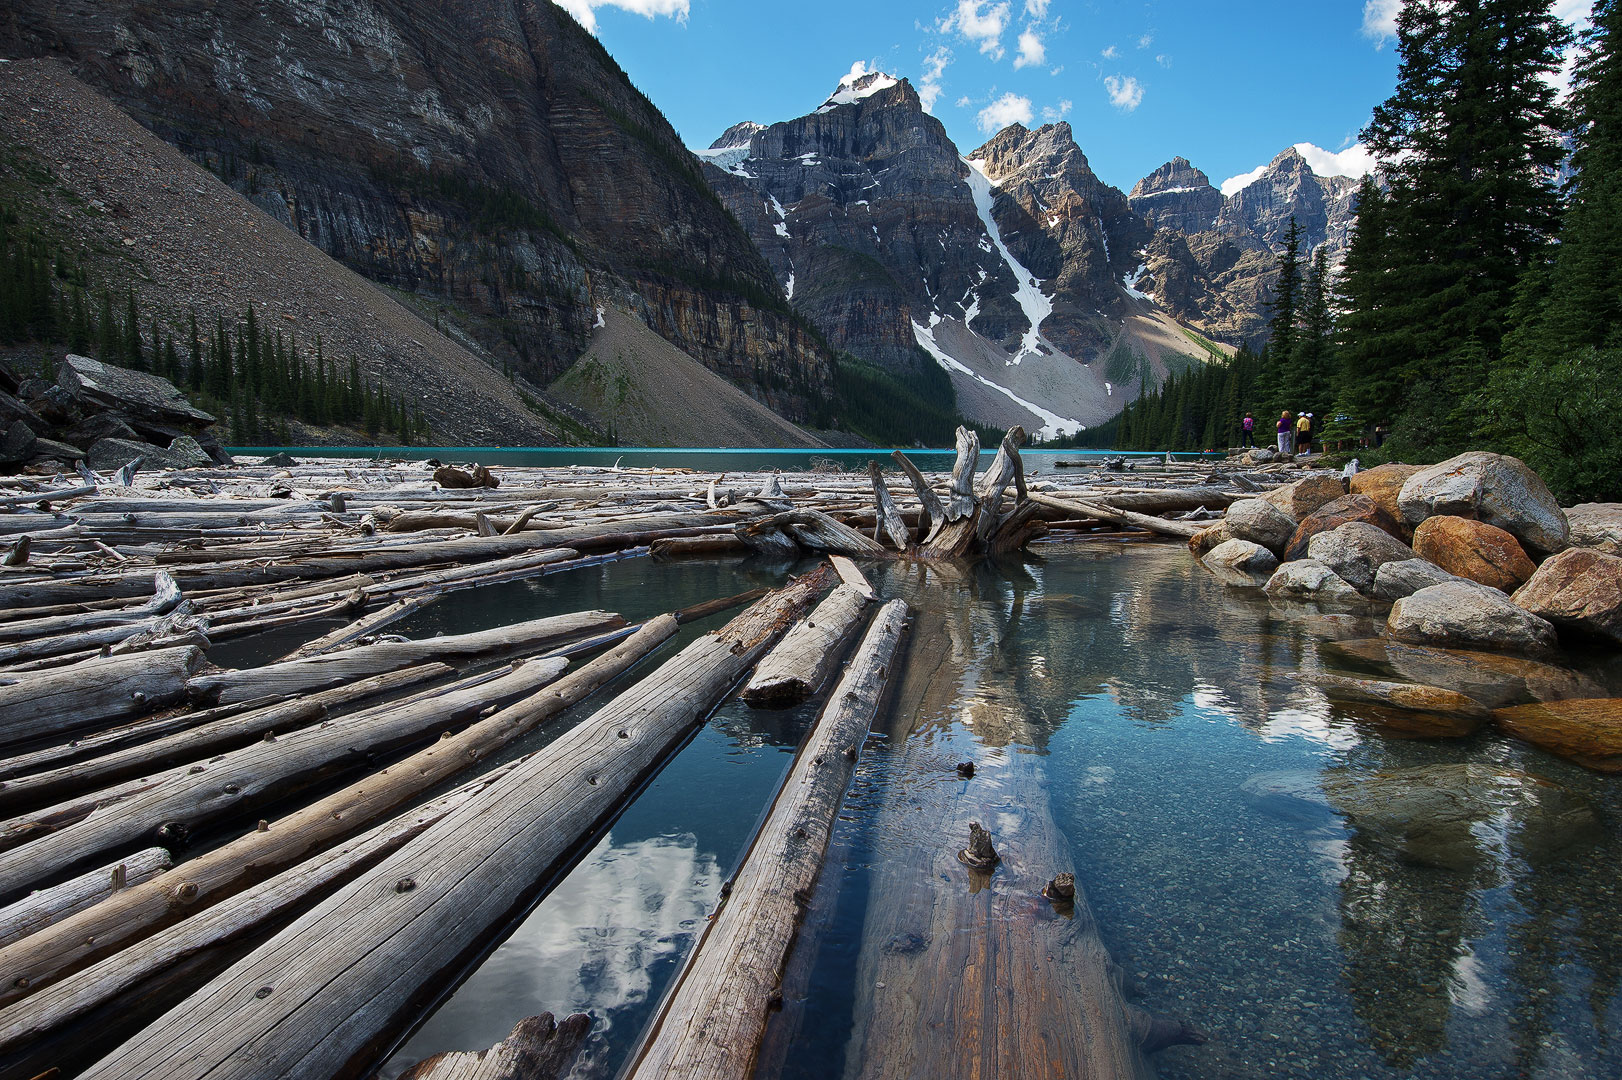 Canada, Glacier, Alberta, Banff, Moraine Lake, Canadian Rockies, Lake Louise, Jasper National Park, Rocky Mountains, Lake Minnewanka, Icefields Parkway, Banff National Park, Mount Rundle, photo